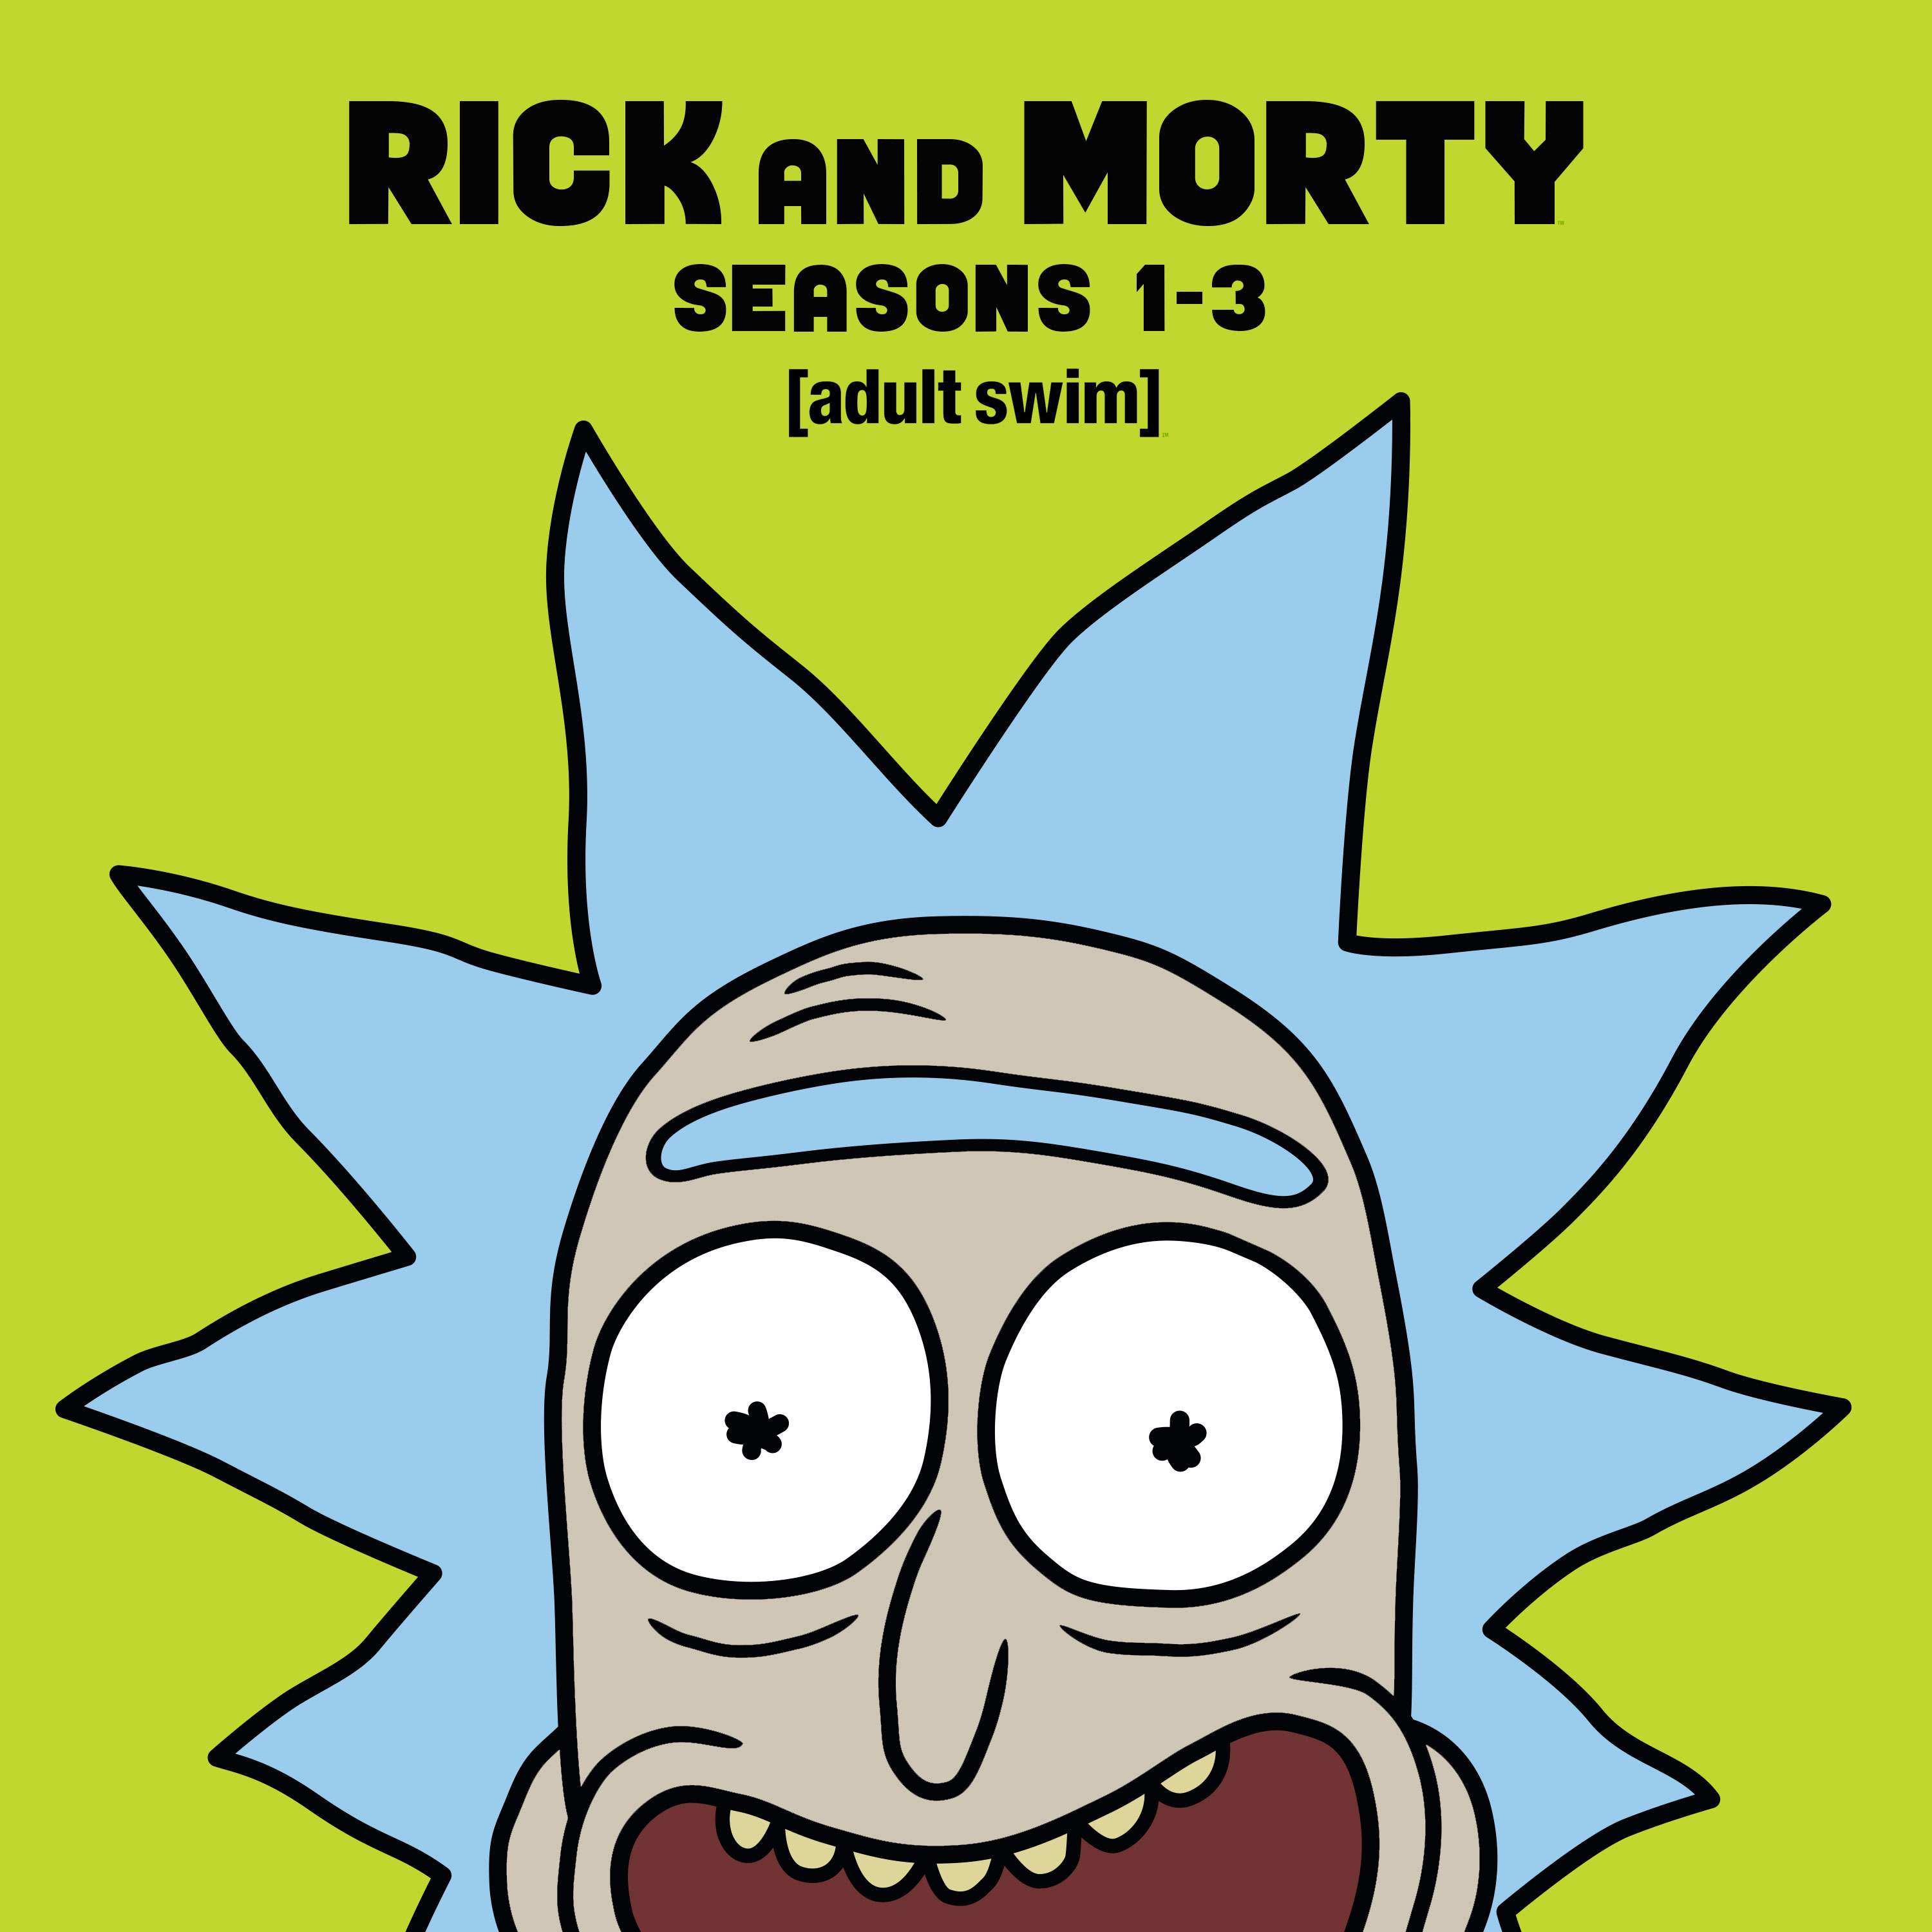 Rick and Morty [Box Set], Season 1